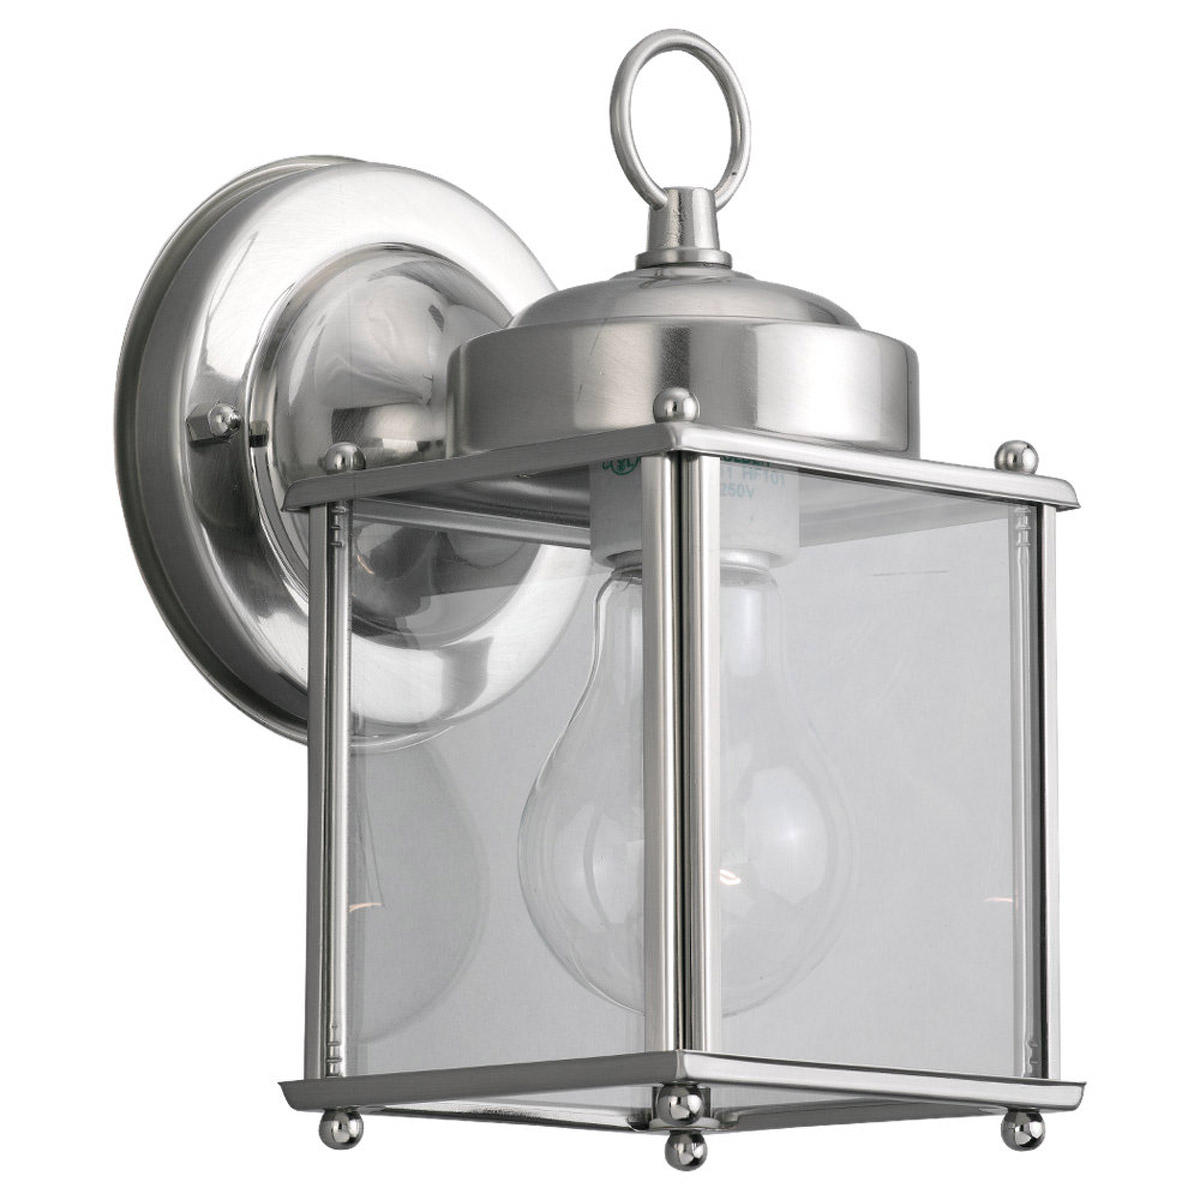 Sea Gull Lighting New Castle 1 Light Outdoor Wall Lantern in Antique Brushed Nickel 8592-965 photo